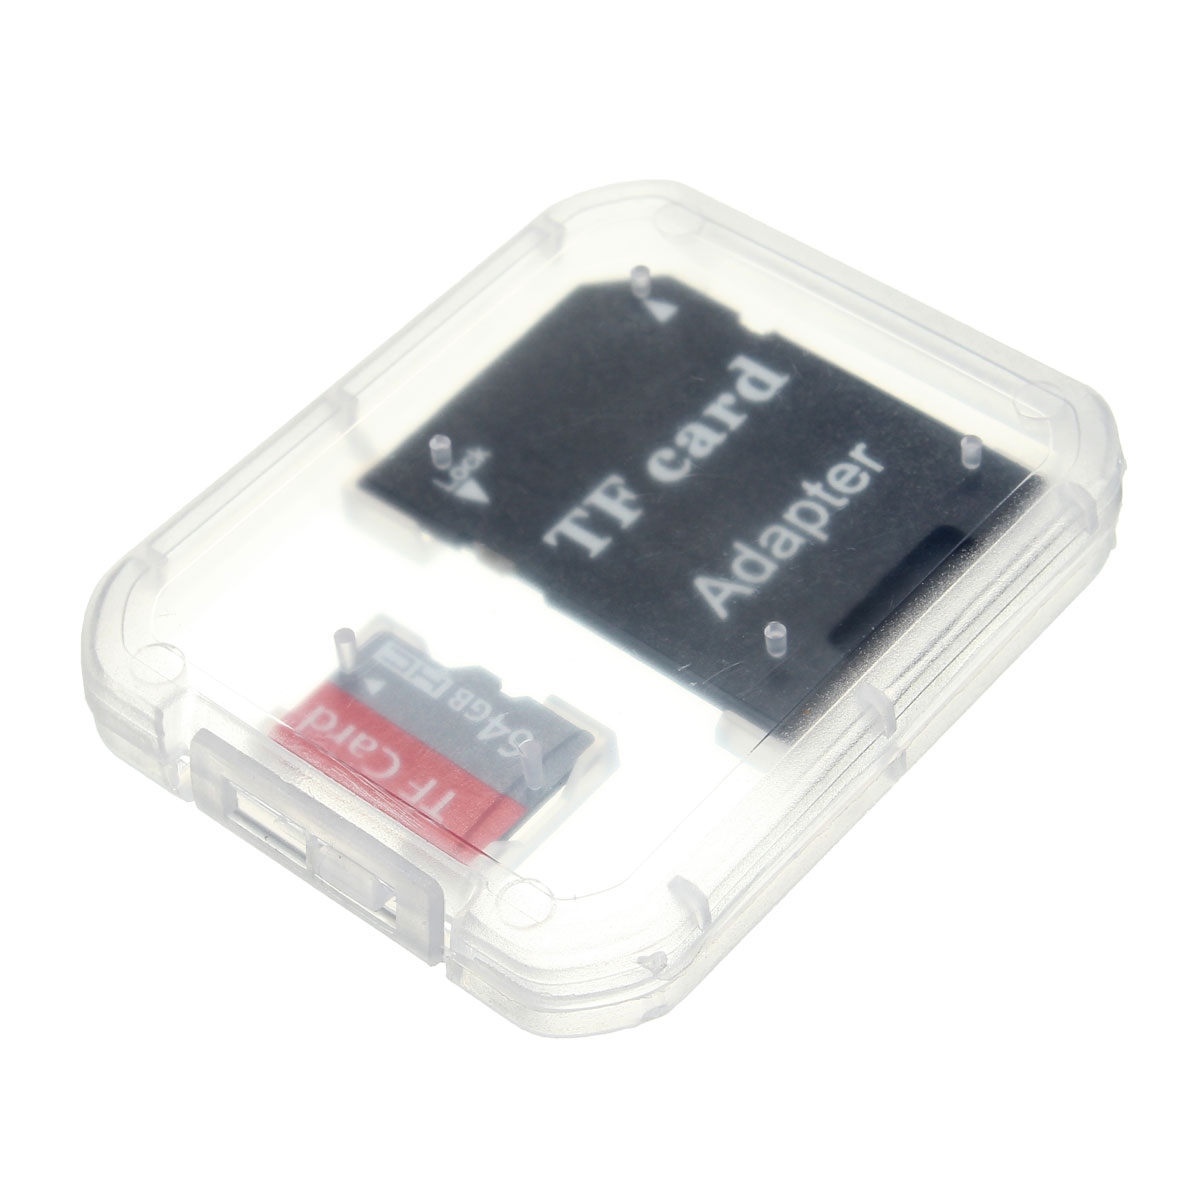 32G Go GB Micro Carte Mémoire Class10 SD/SDXC Card Adaptateur UHS 1